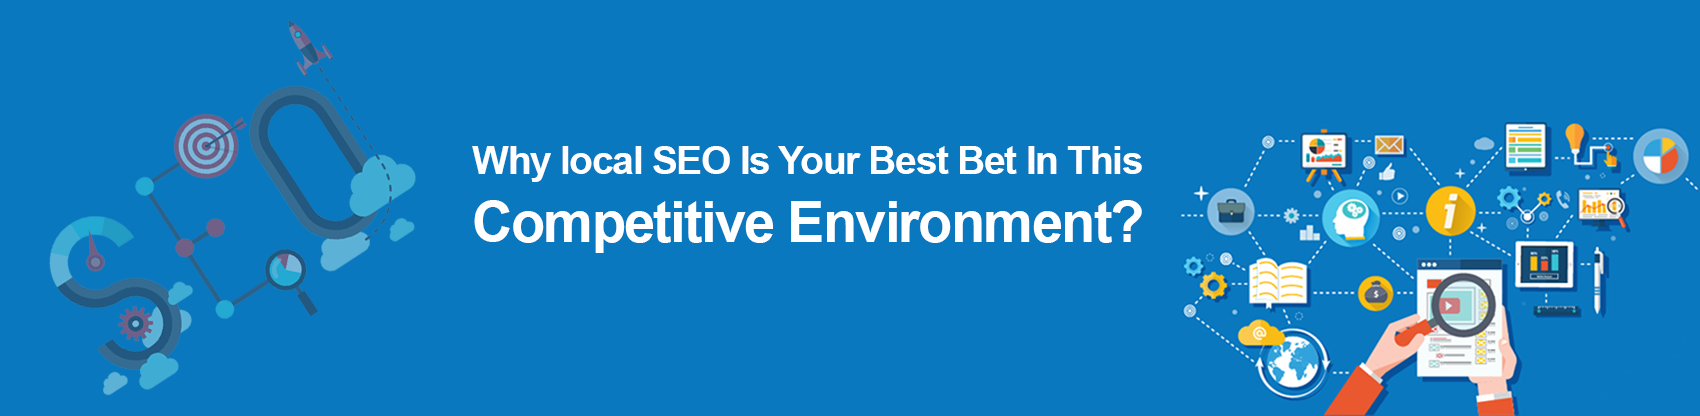 Why local SEO is your best bet in this competitive environment?